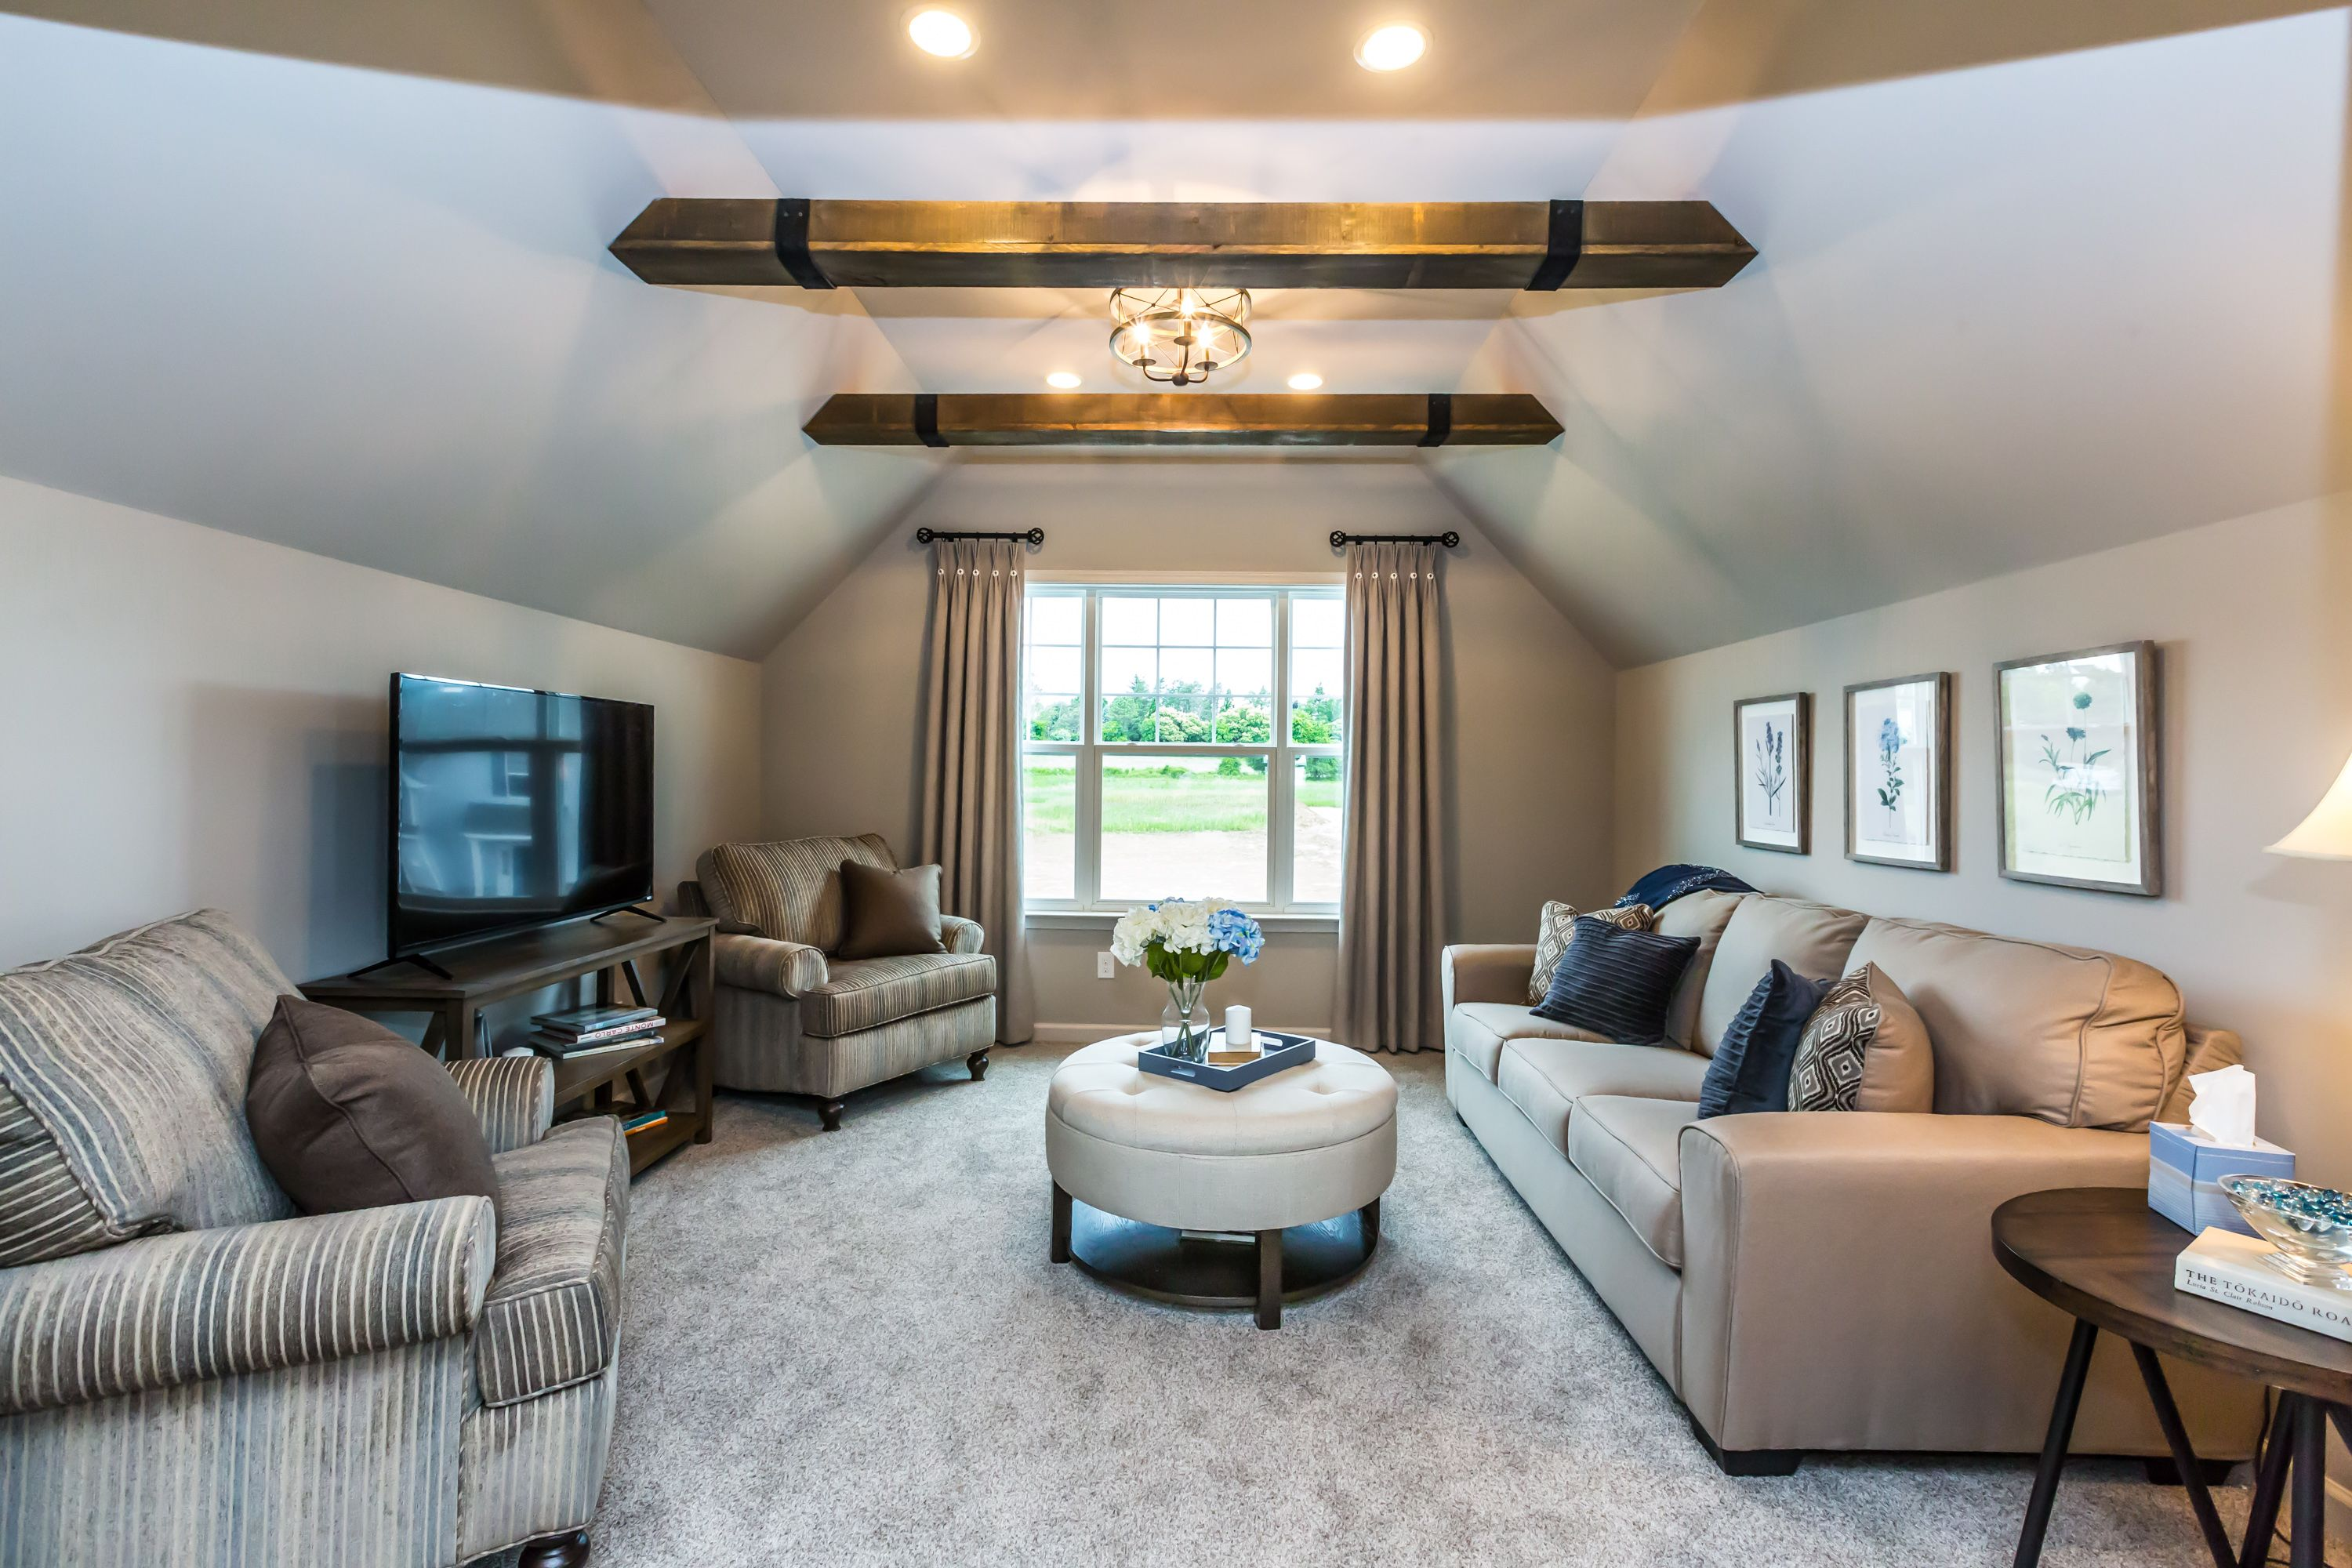 Living Area featured in the Malvern By Rouse Chamberlin Homes in Philadelphia, PA